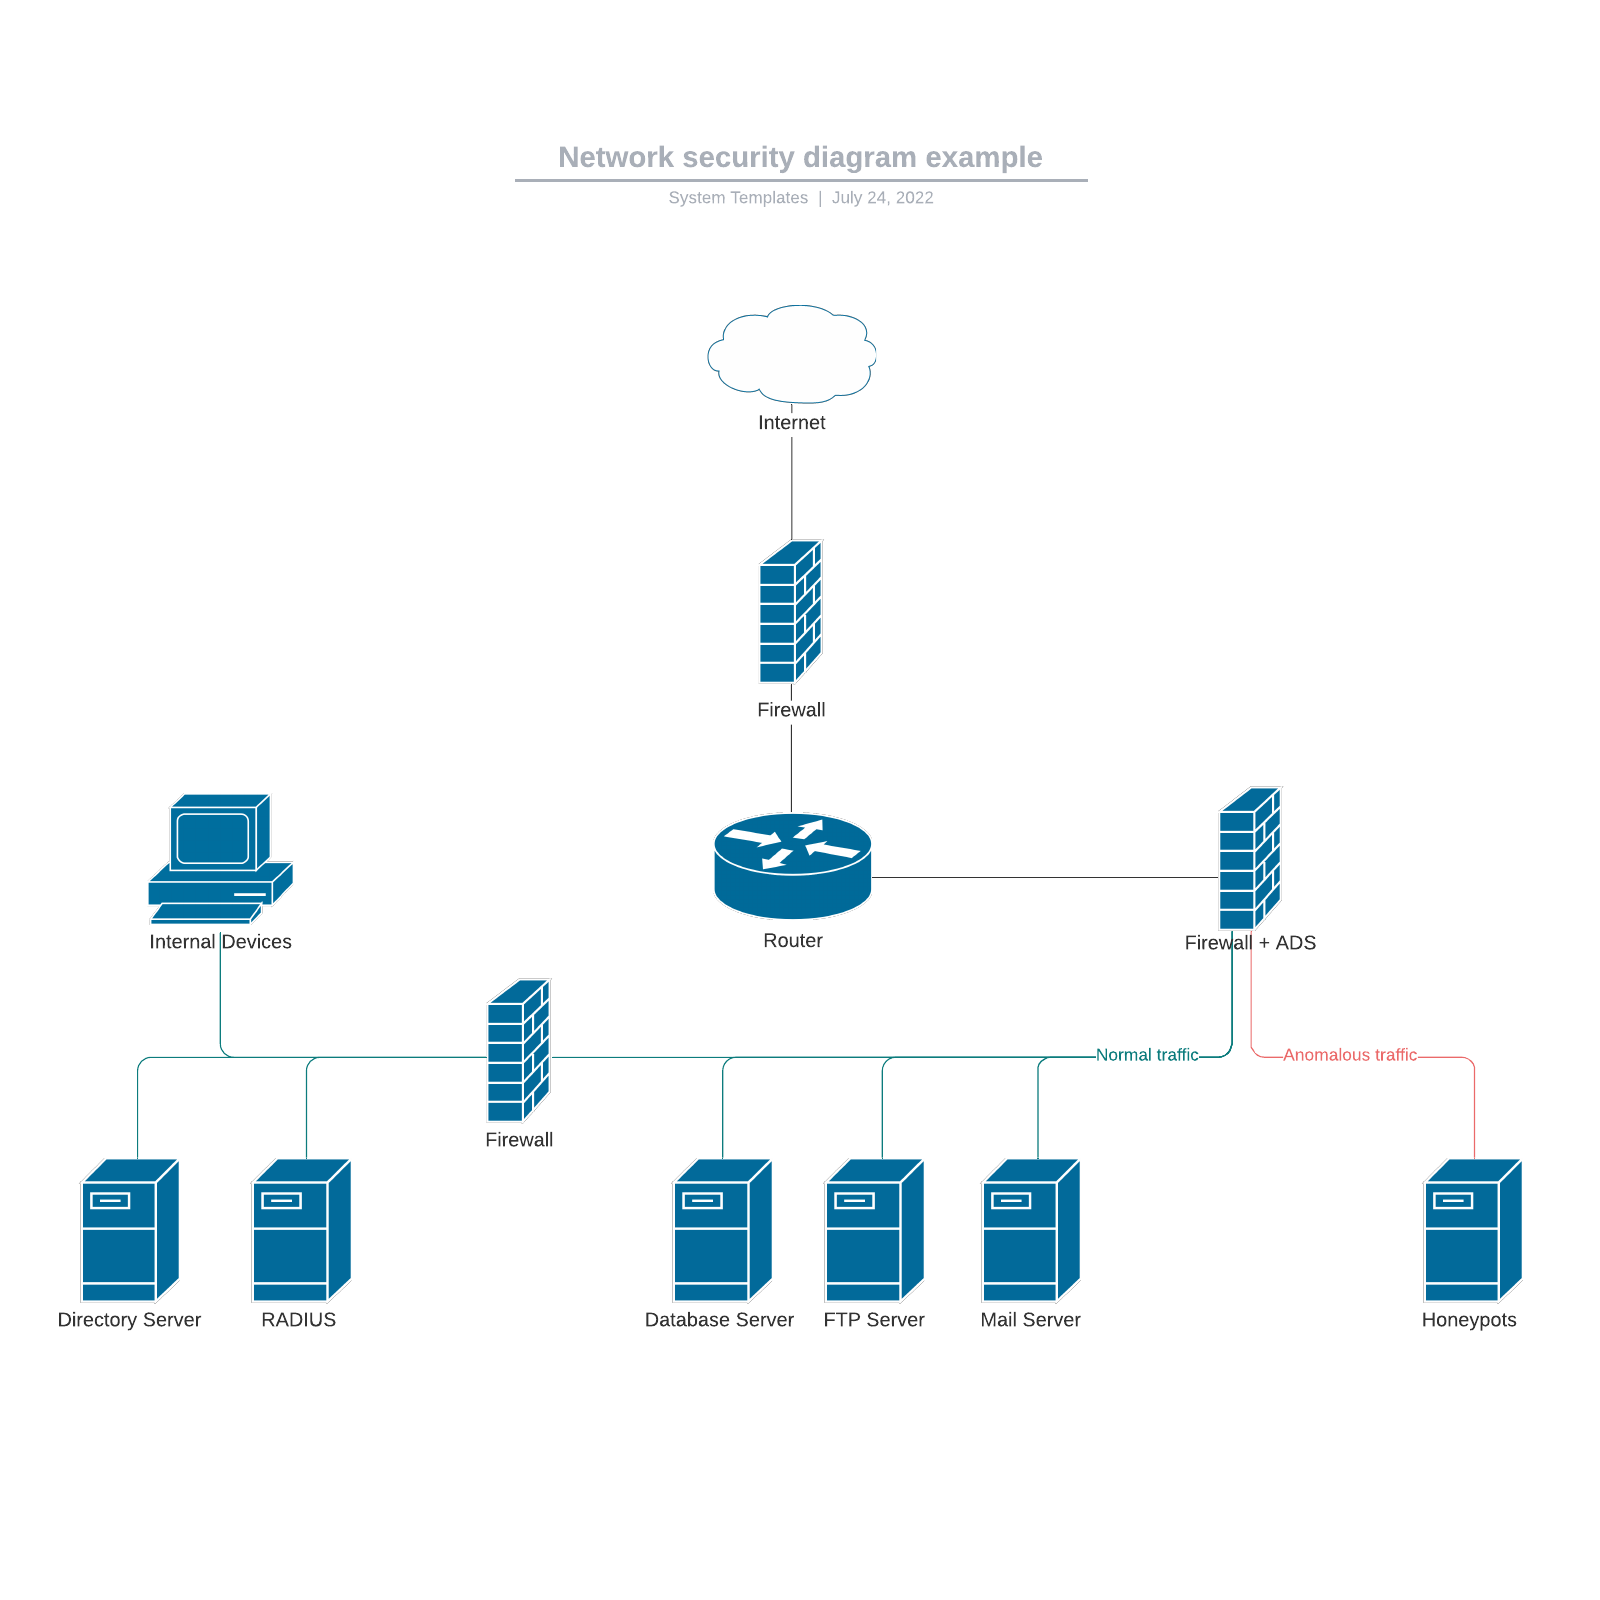 Network security diagram example